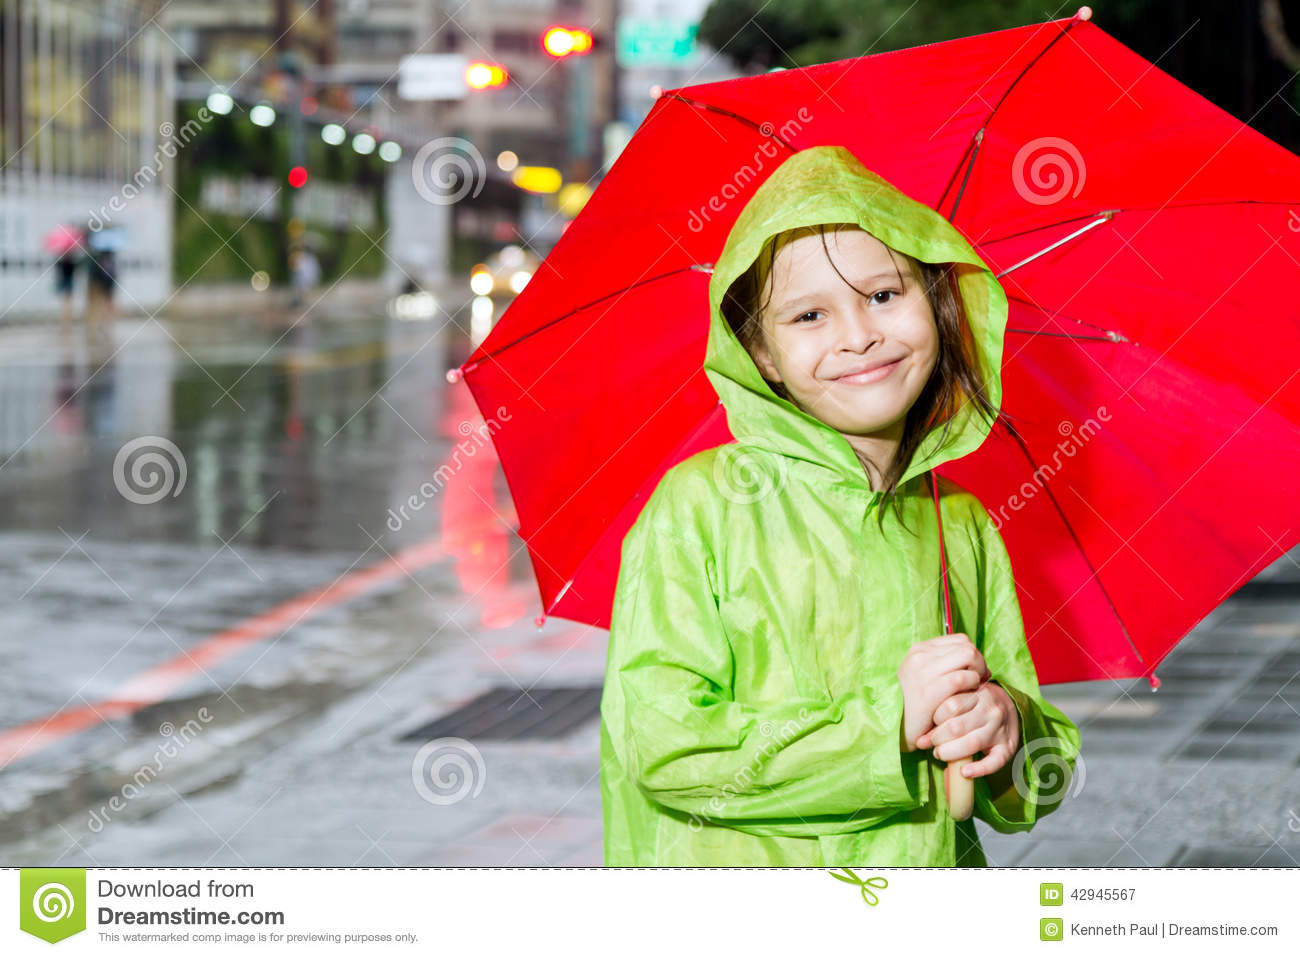 Question What young girls raincoats consider, that